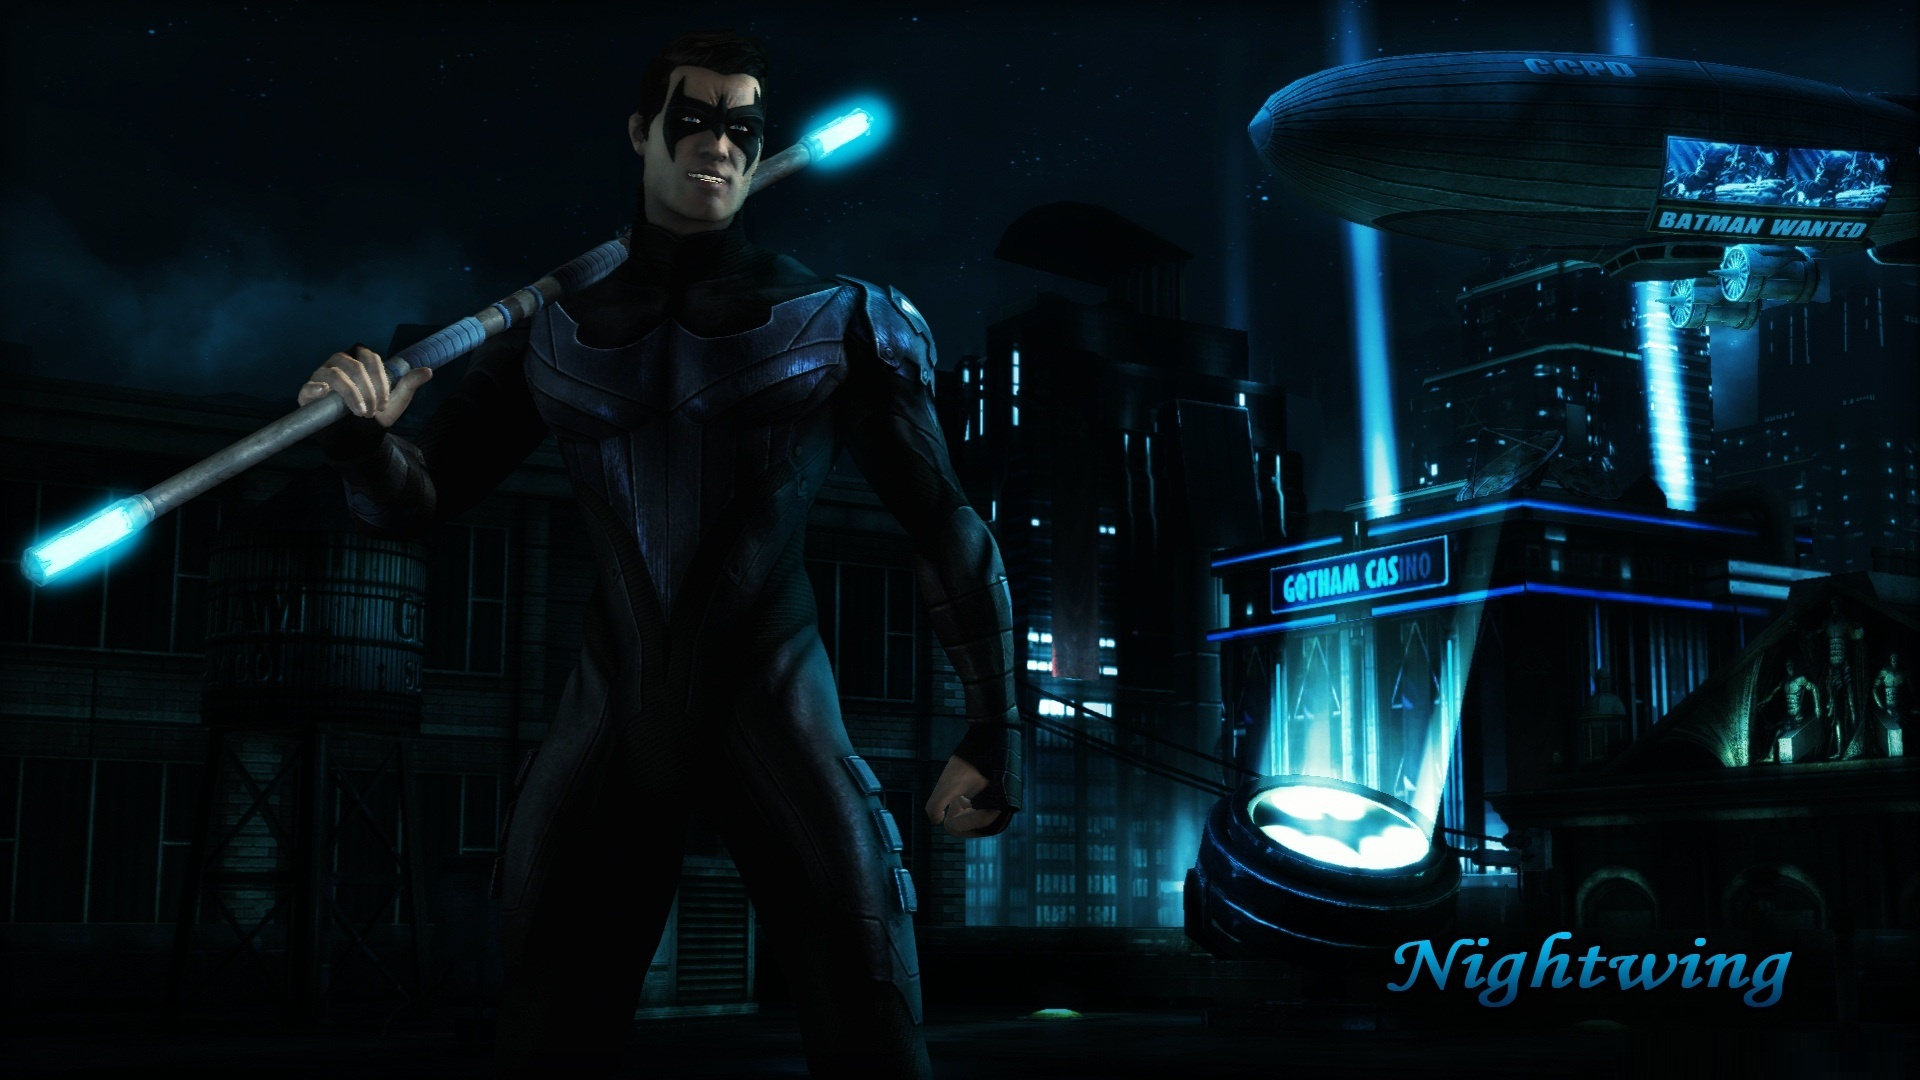 Nightwing Injustice Gods Among Us Wallpapers 1920x1080 428815